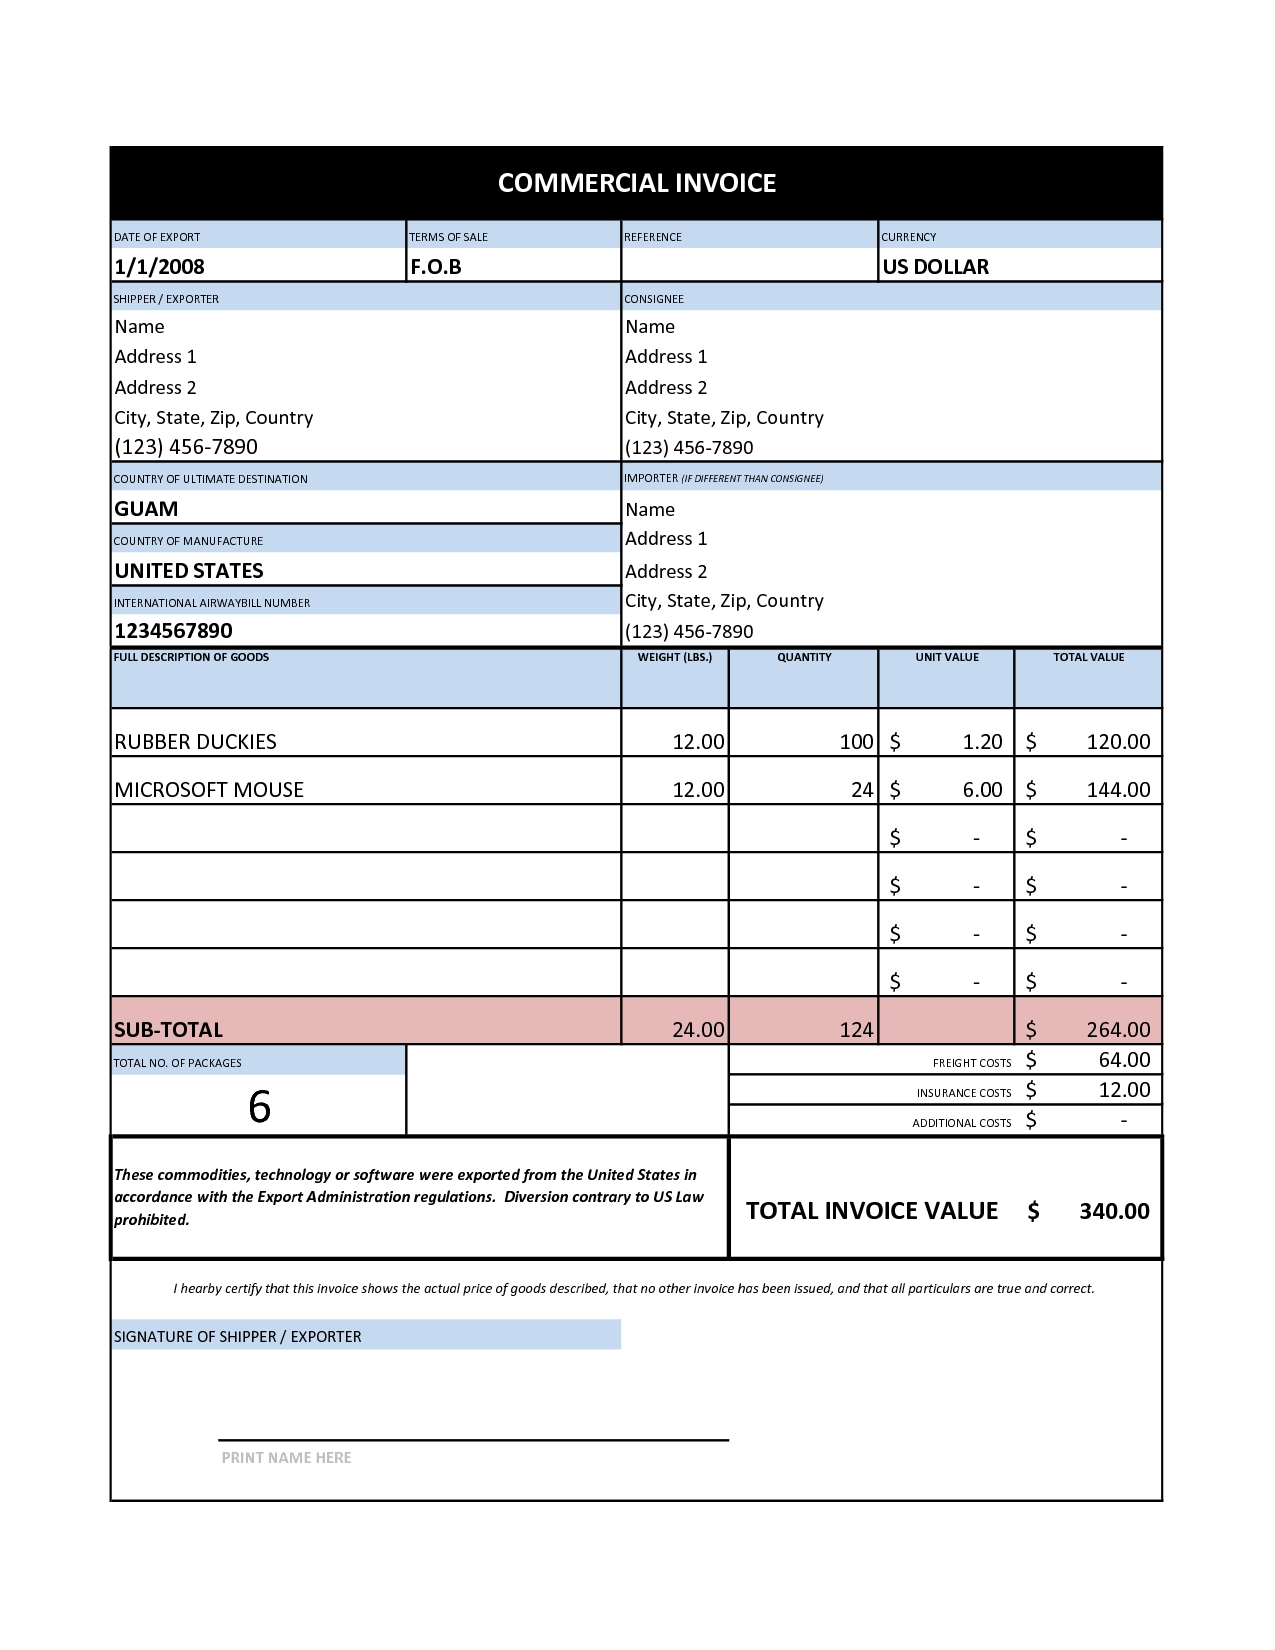 download tally invoice template free download | rabitah, Invoice templates